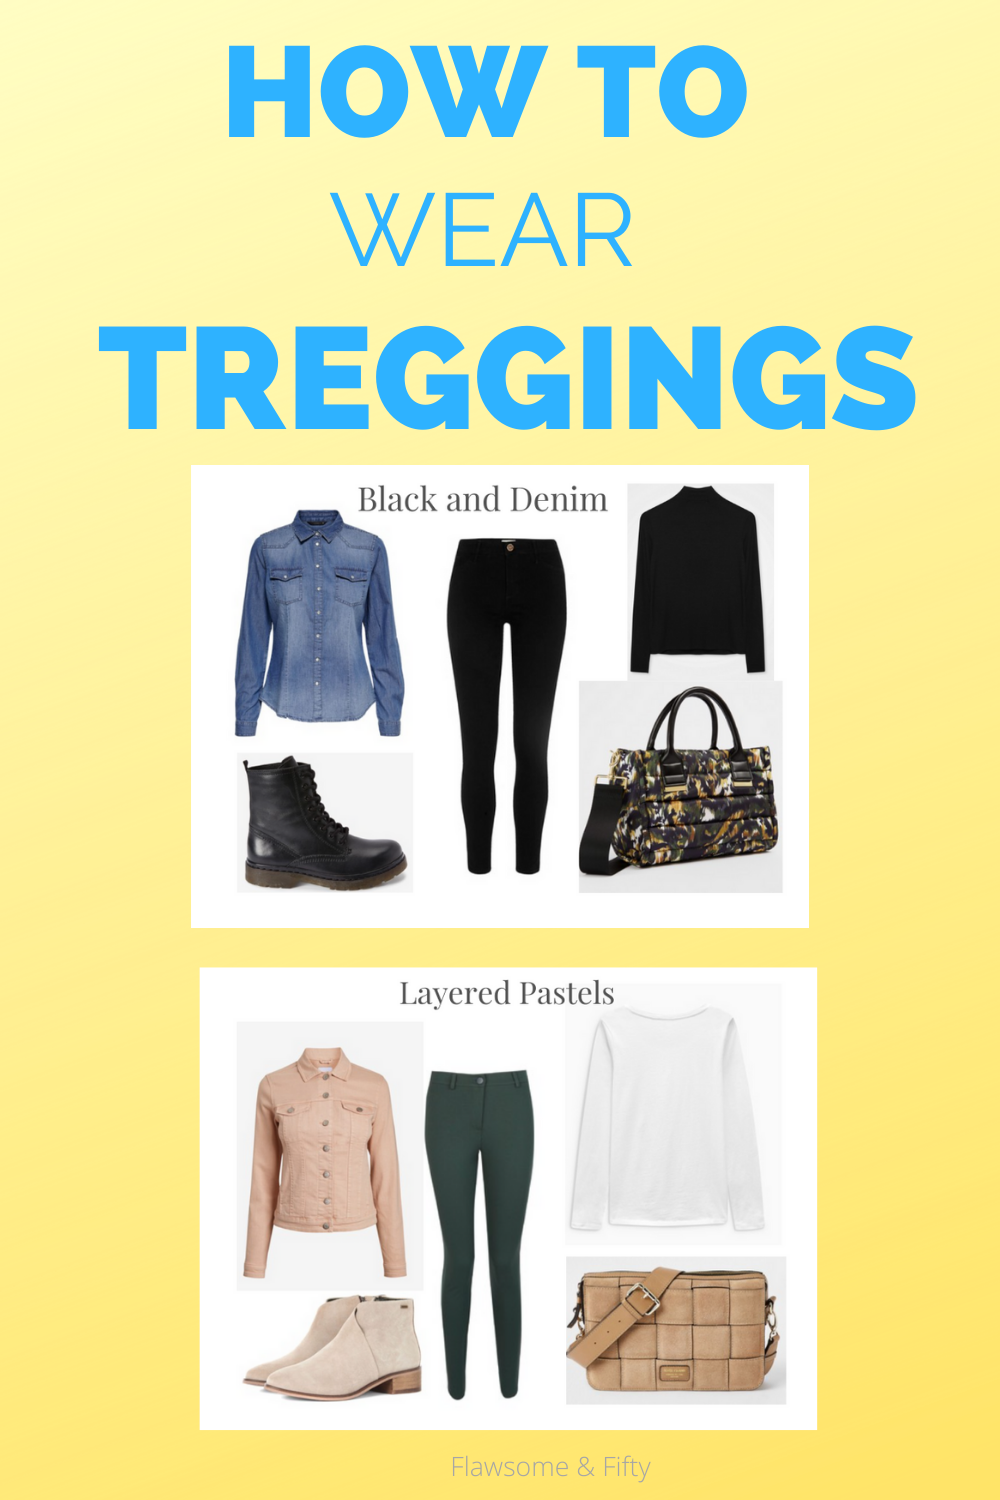 How to wear Treggings, image of womens clothing with text overlay.